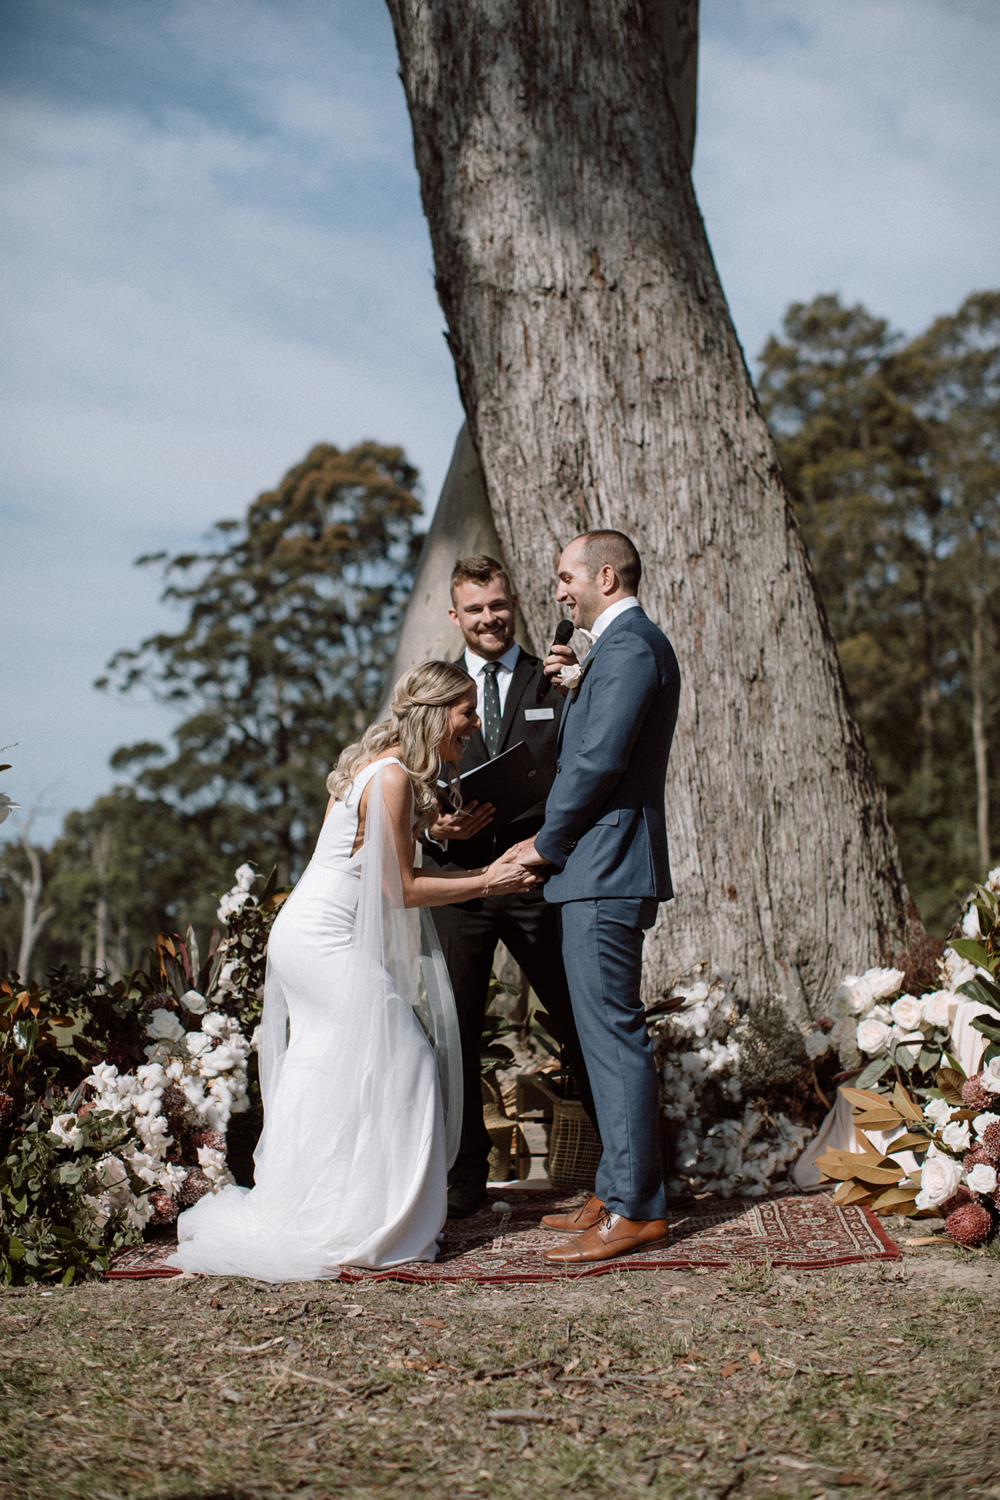 mitch bell wedding celebrant worrowing jervis bay